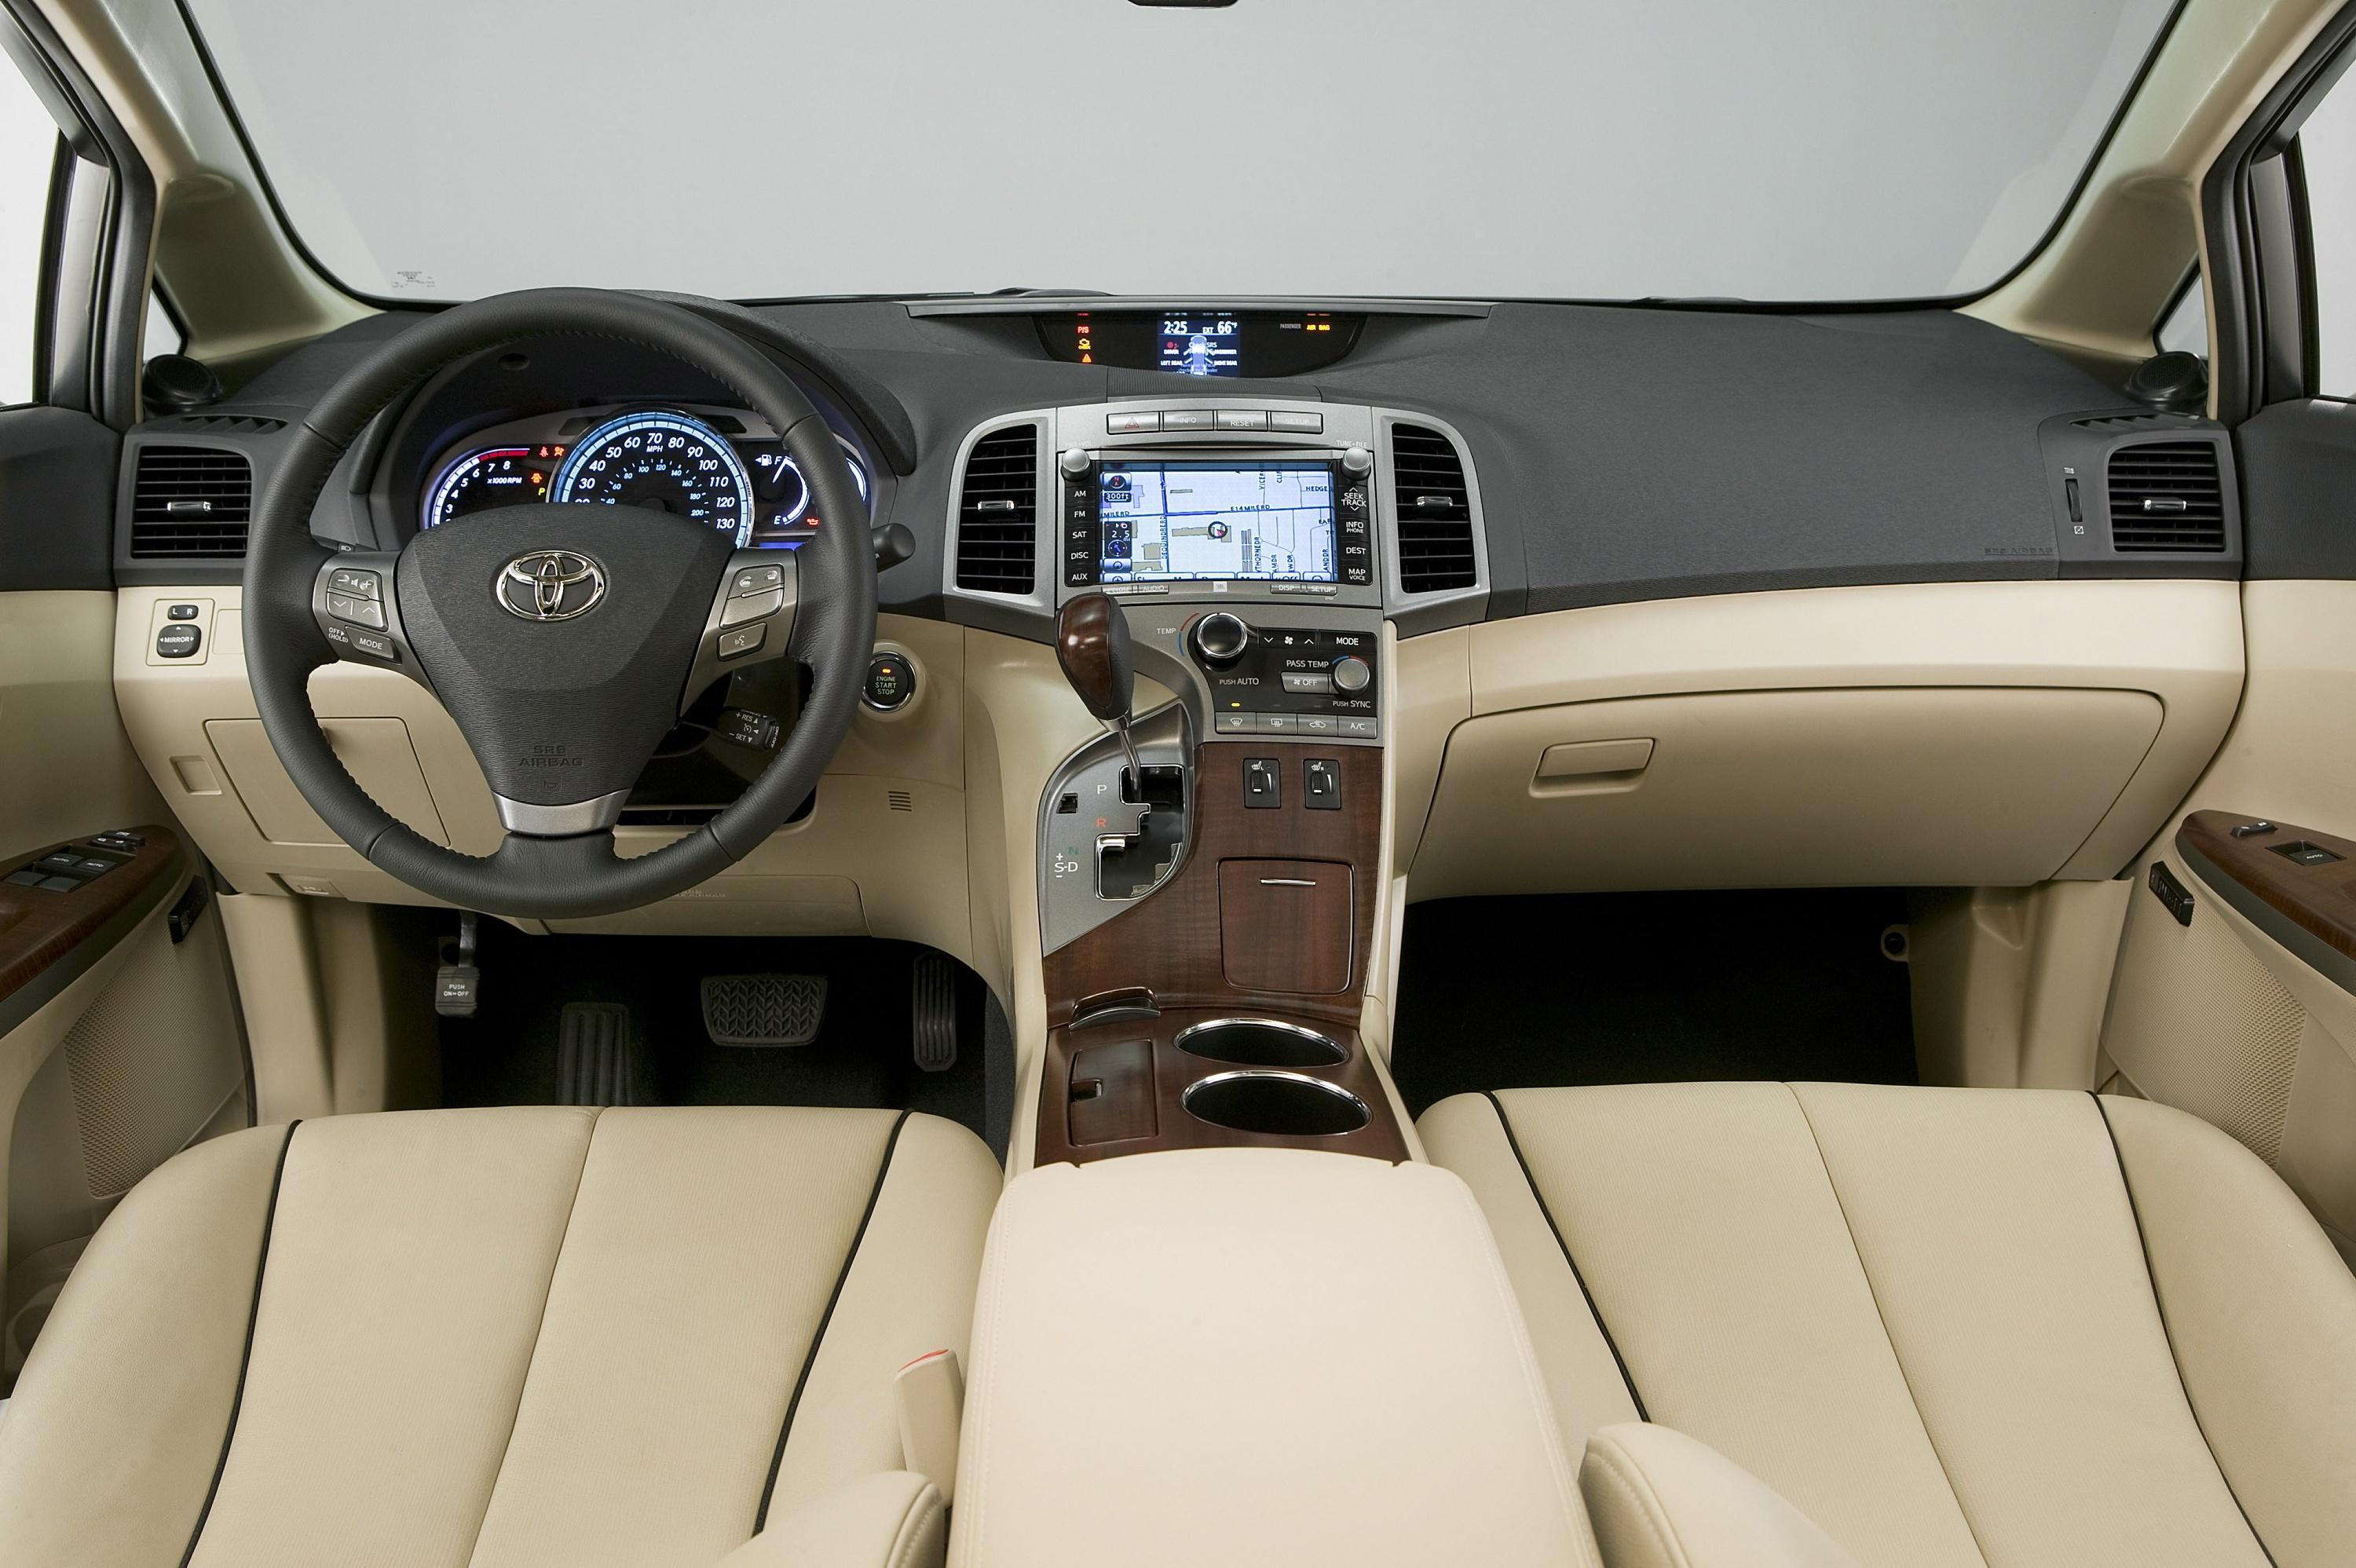 seats like look upgraded wood trim red nor redwood ca are venza neither news autos adds toyota general